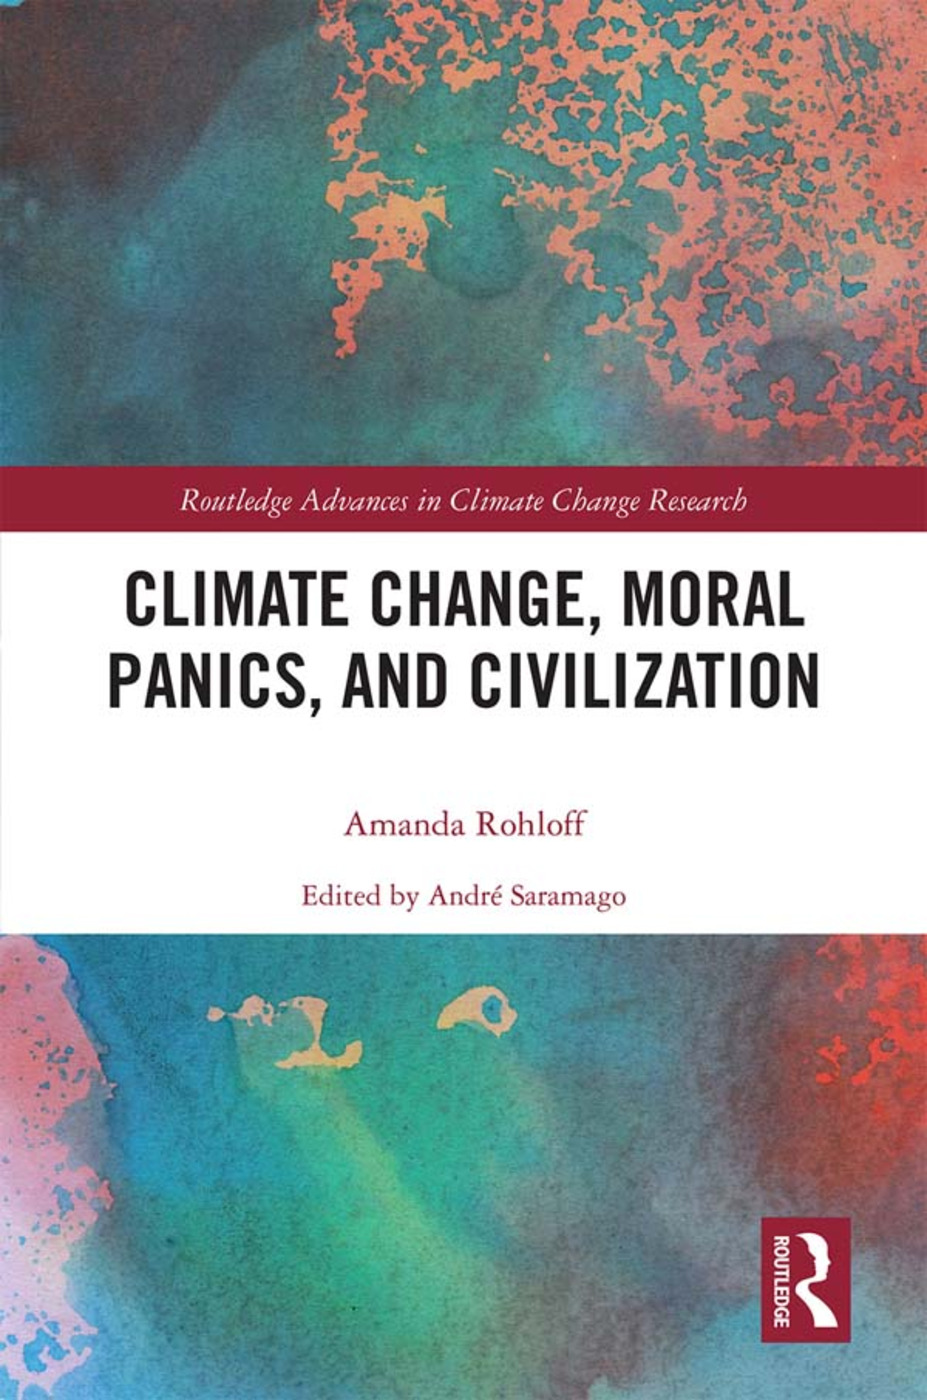 Climate Change, Moral Panics and Civilization: 1st Edition (Paperback) book cover